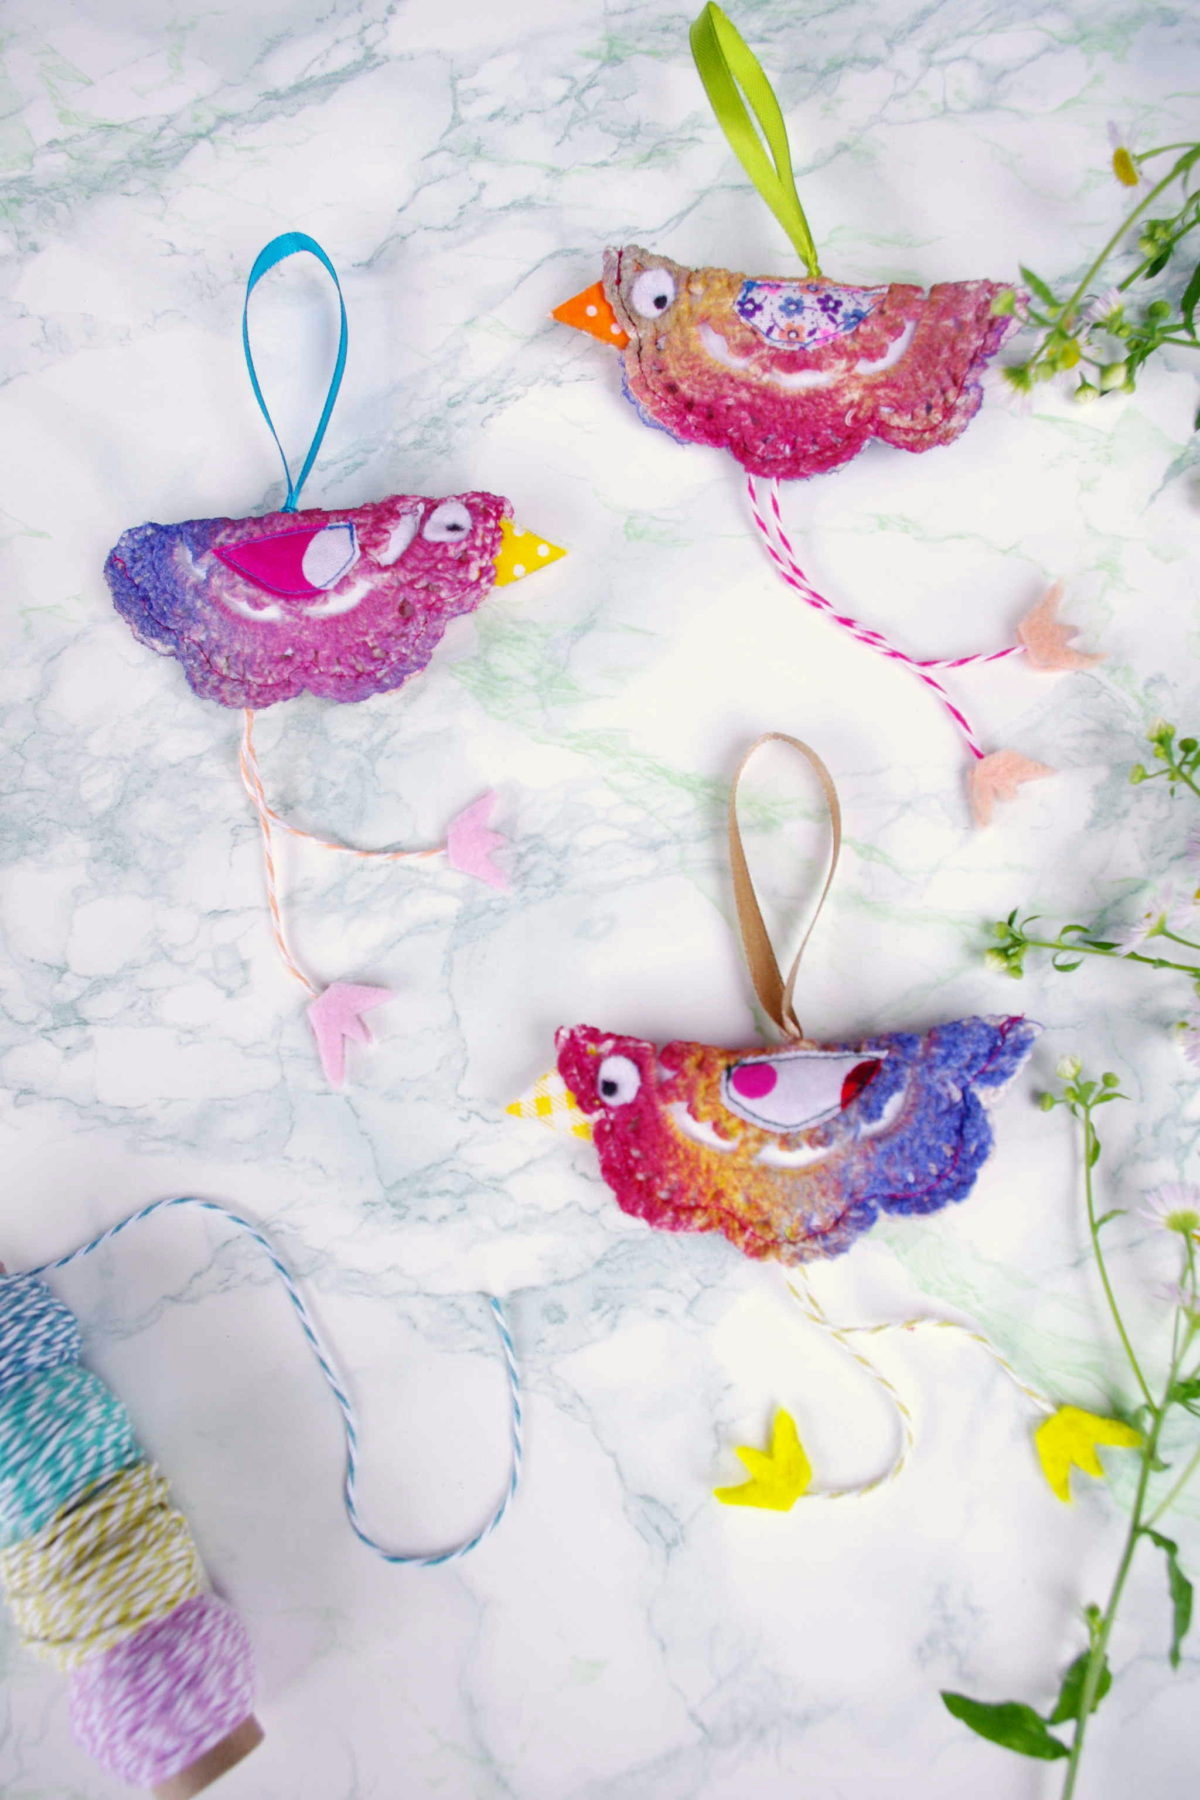 Crocheted doily bird pendants by Idim In Berlin, featured on DIY Salvaged Junk Projects 532 on Funky Junk!